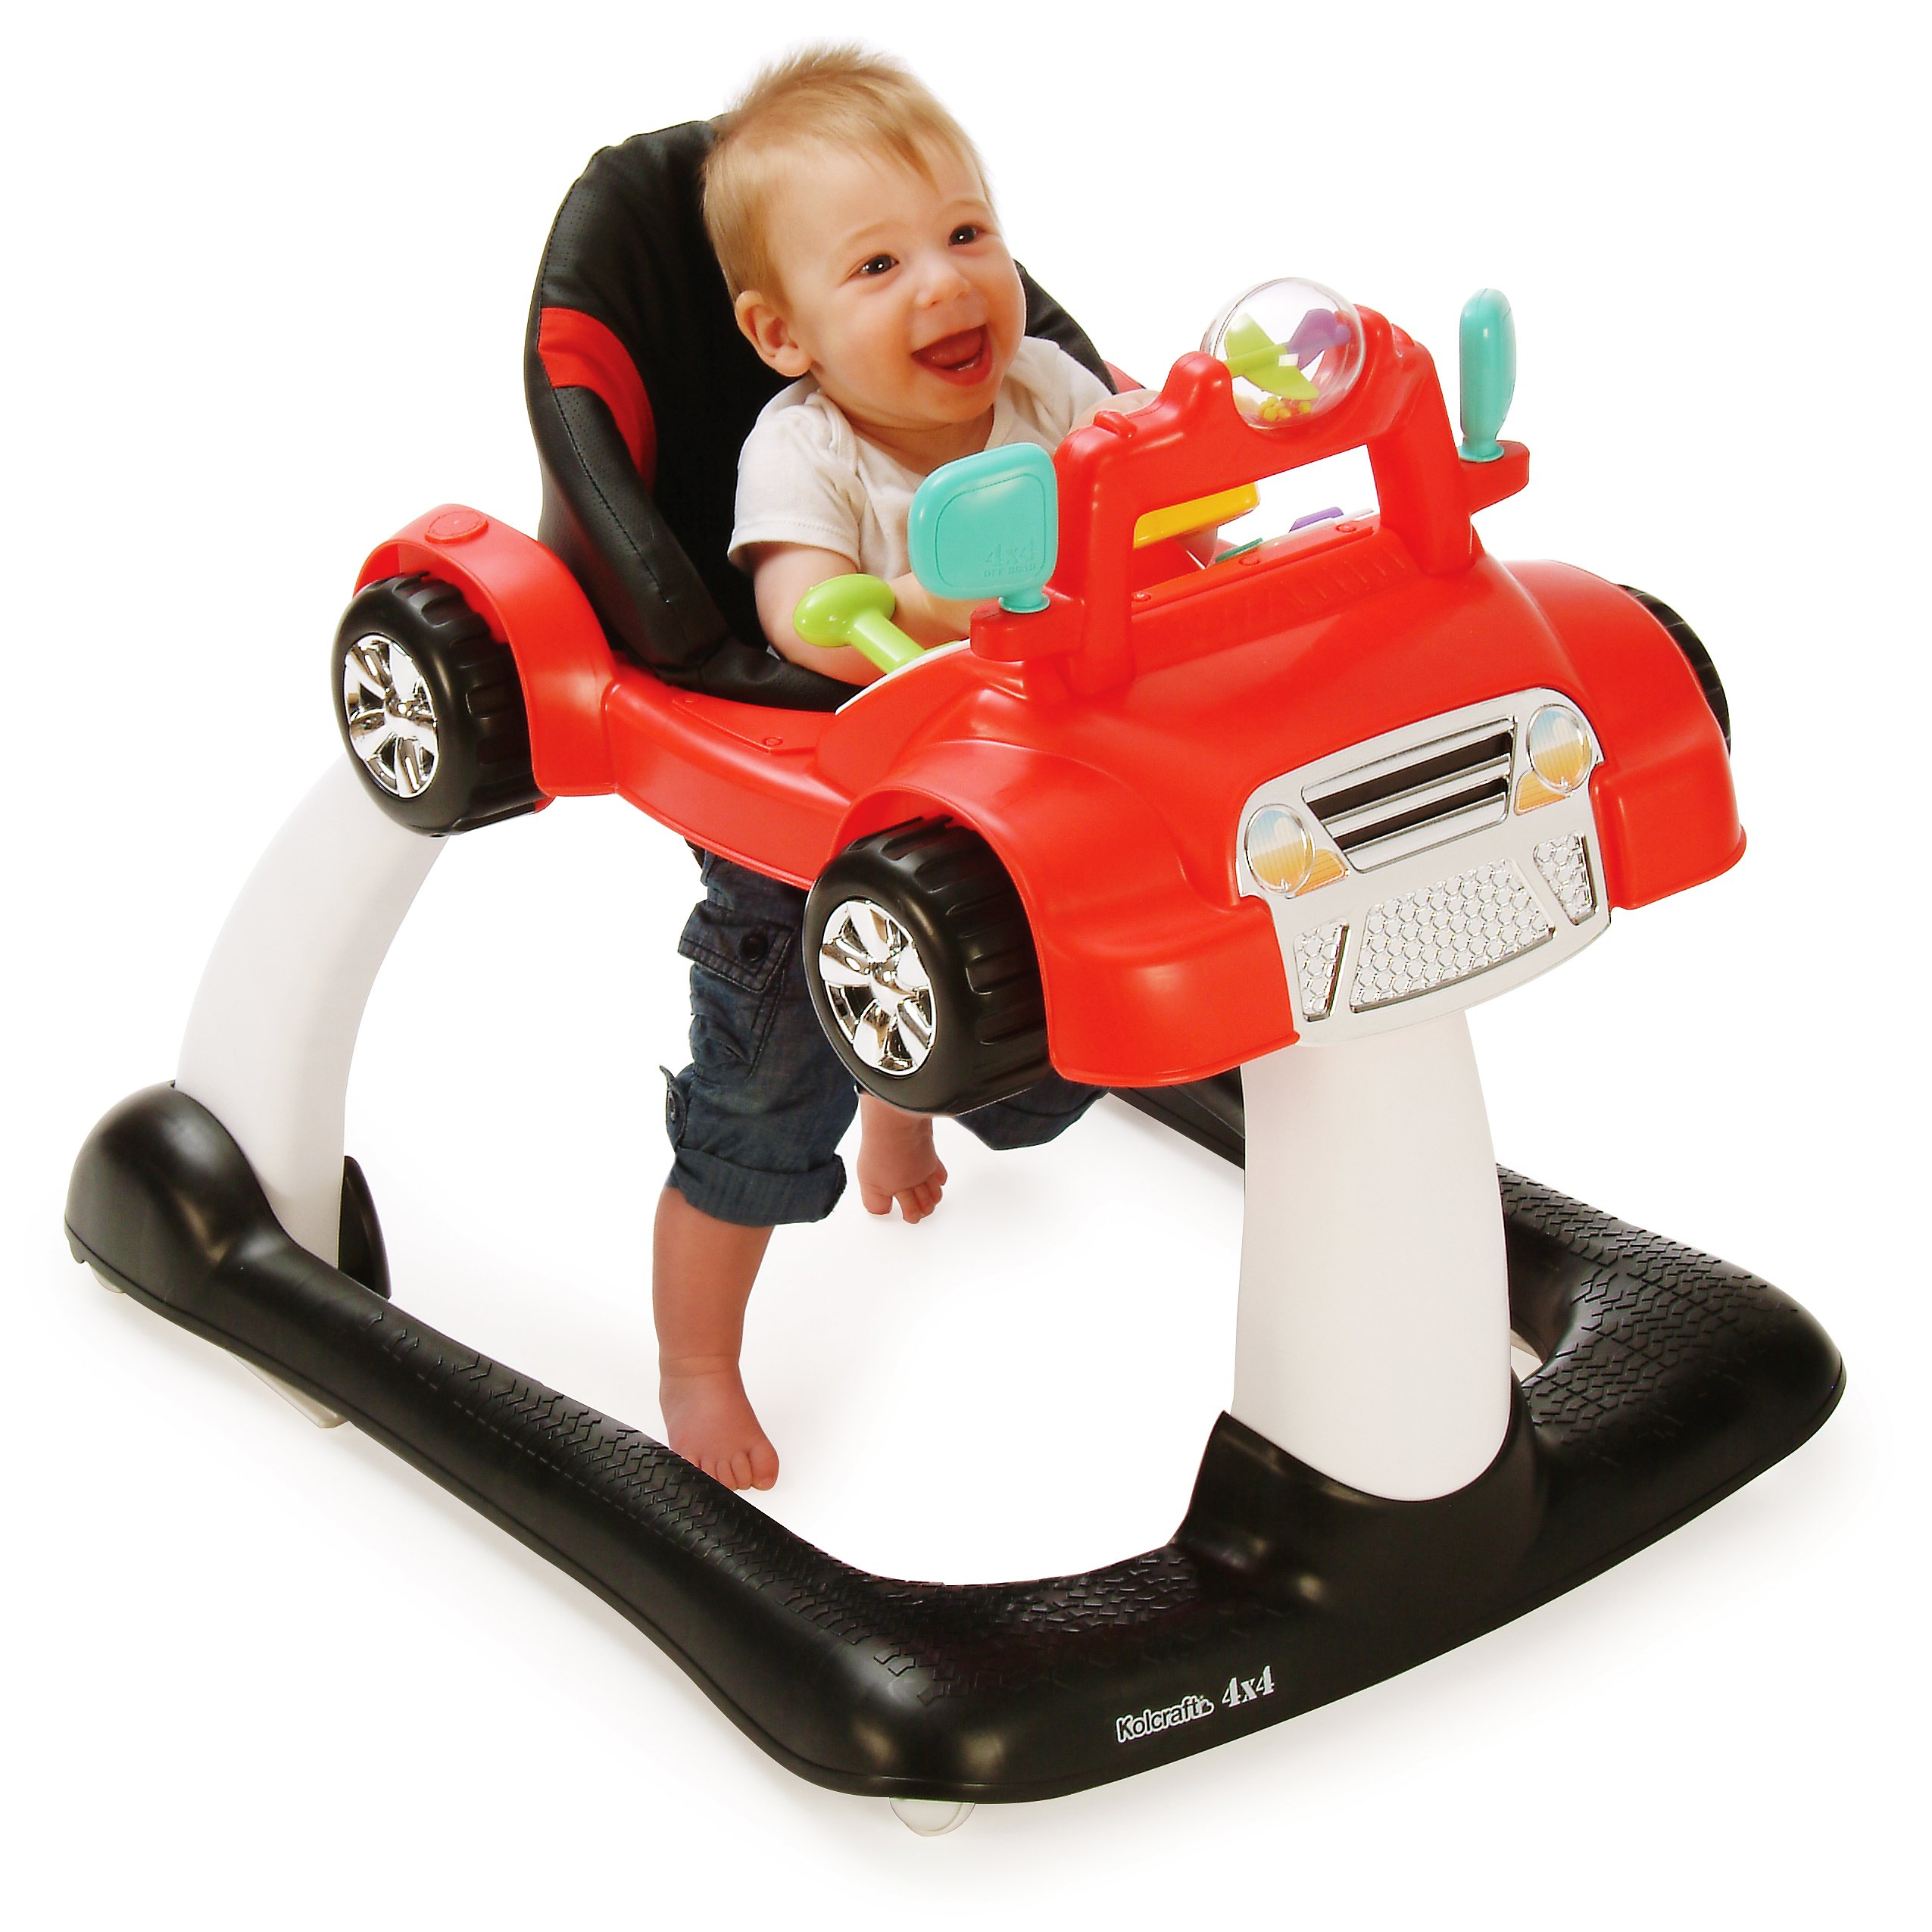 Baby Push Walker With A Variety Of Developmental ...